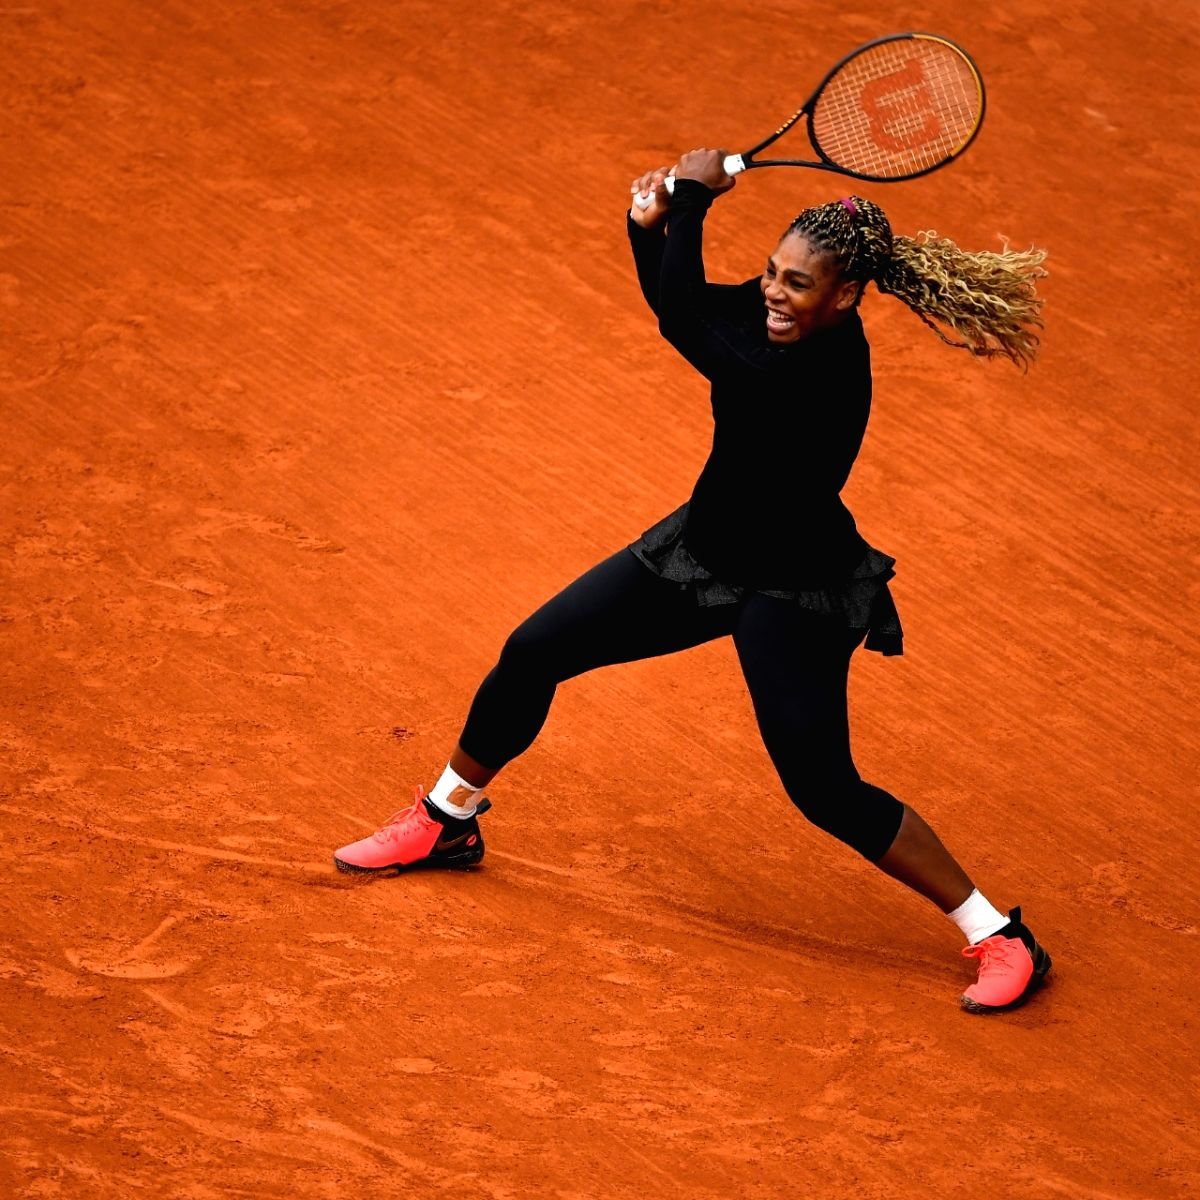 French Open to welcome spectators, introduce night session